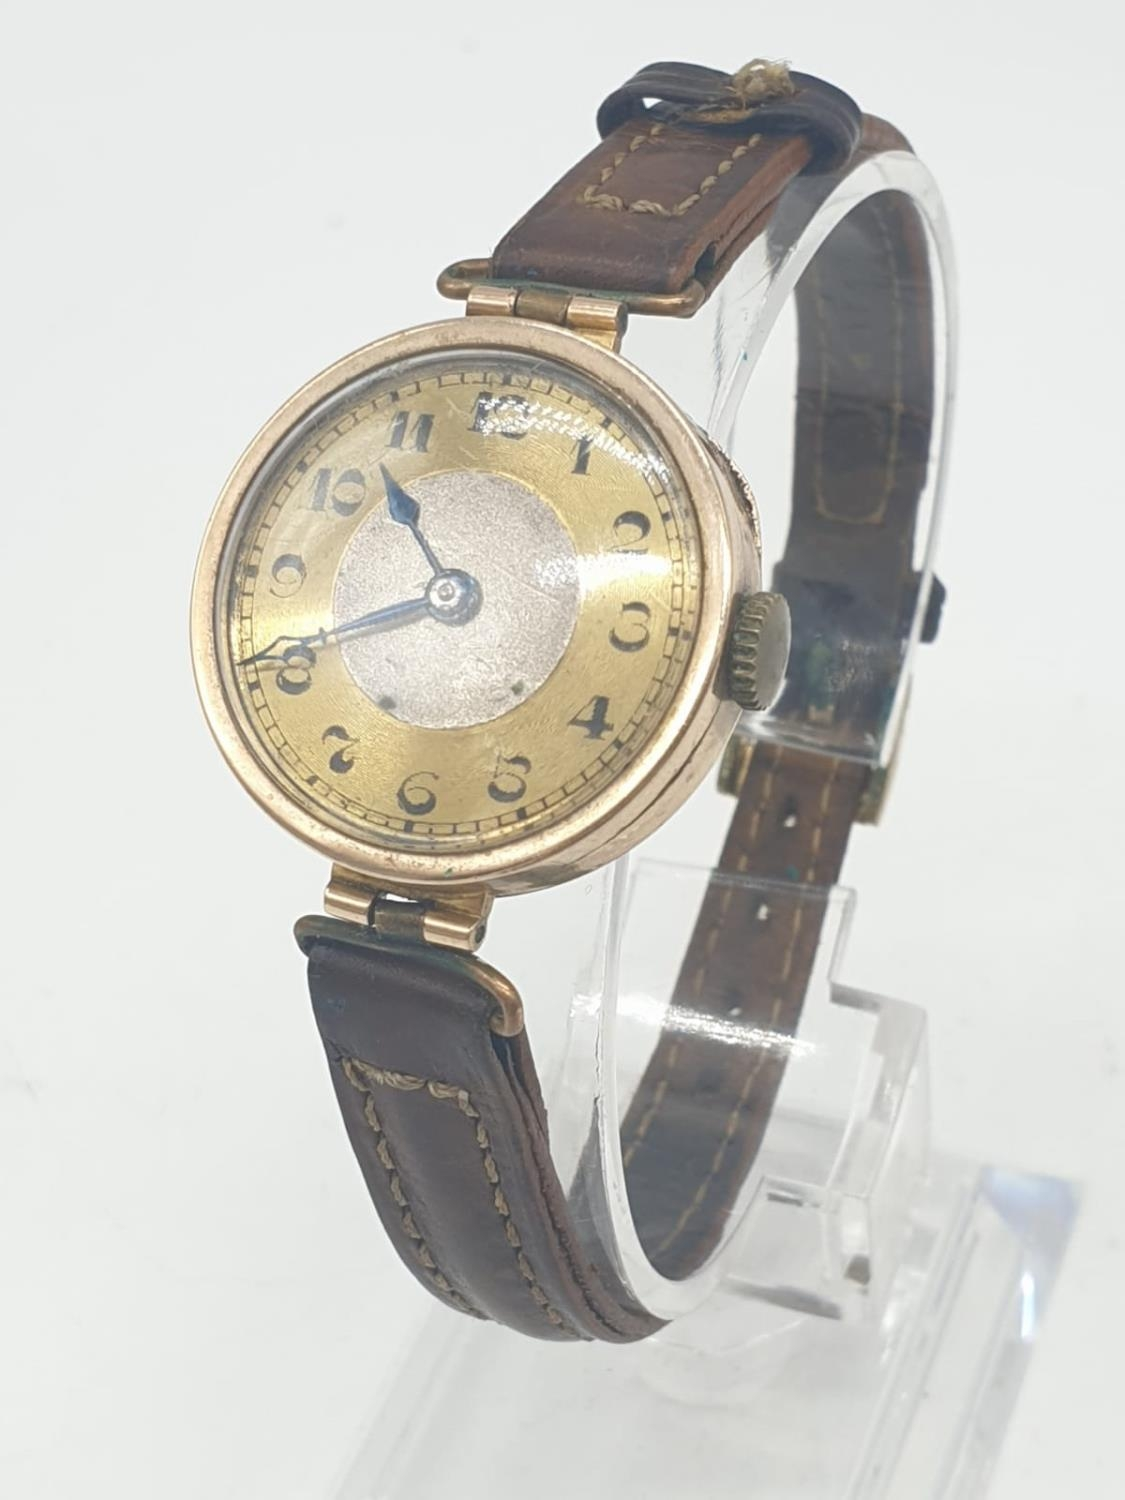 Vintage 9ct gold ladies wrist watch with leather strap